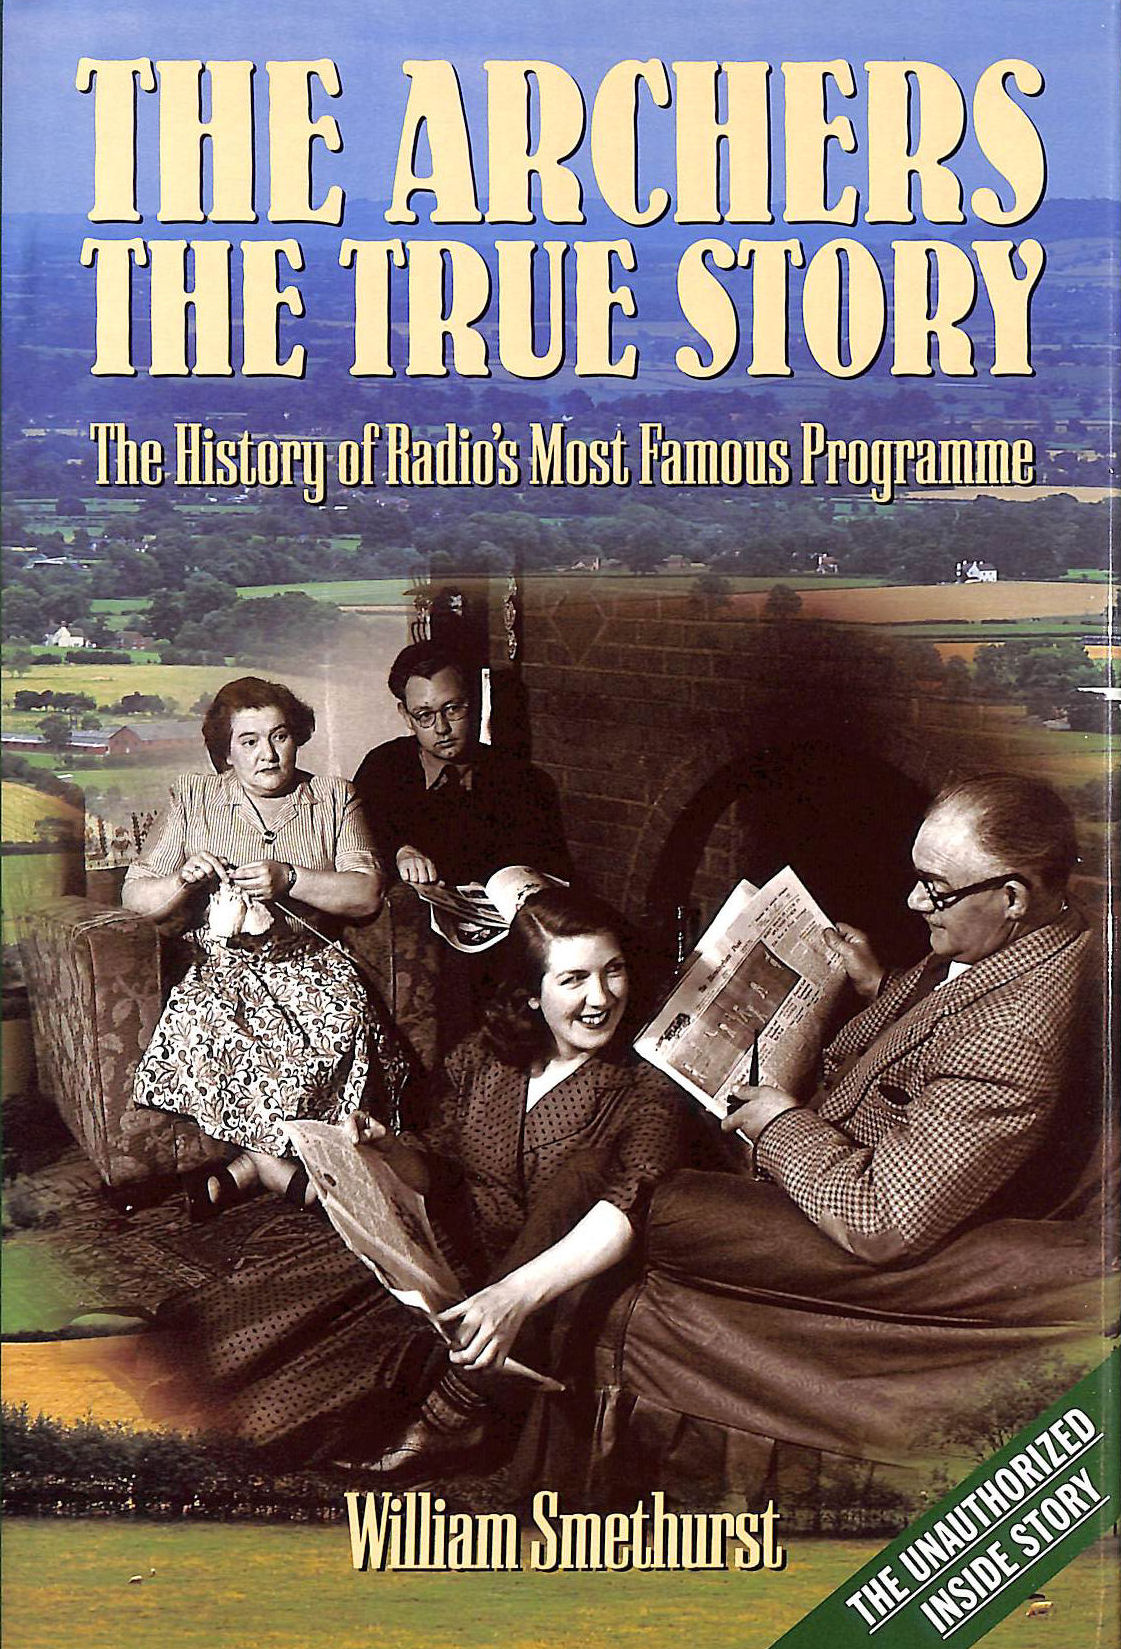 Image for The Archers:The True Story: The True Story - The History of Radio's Most Famous Programme